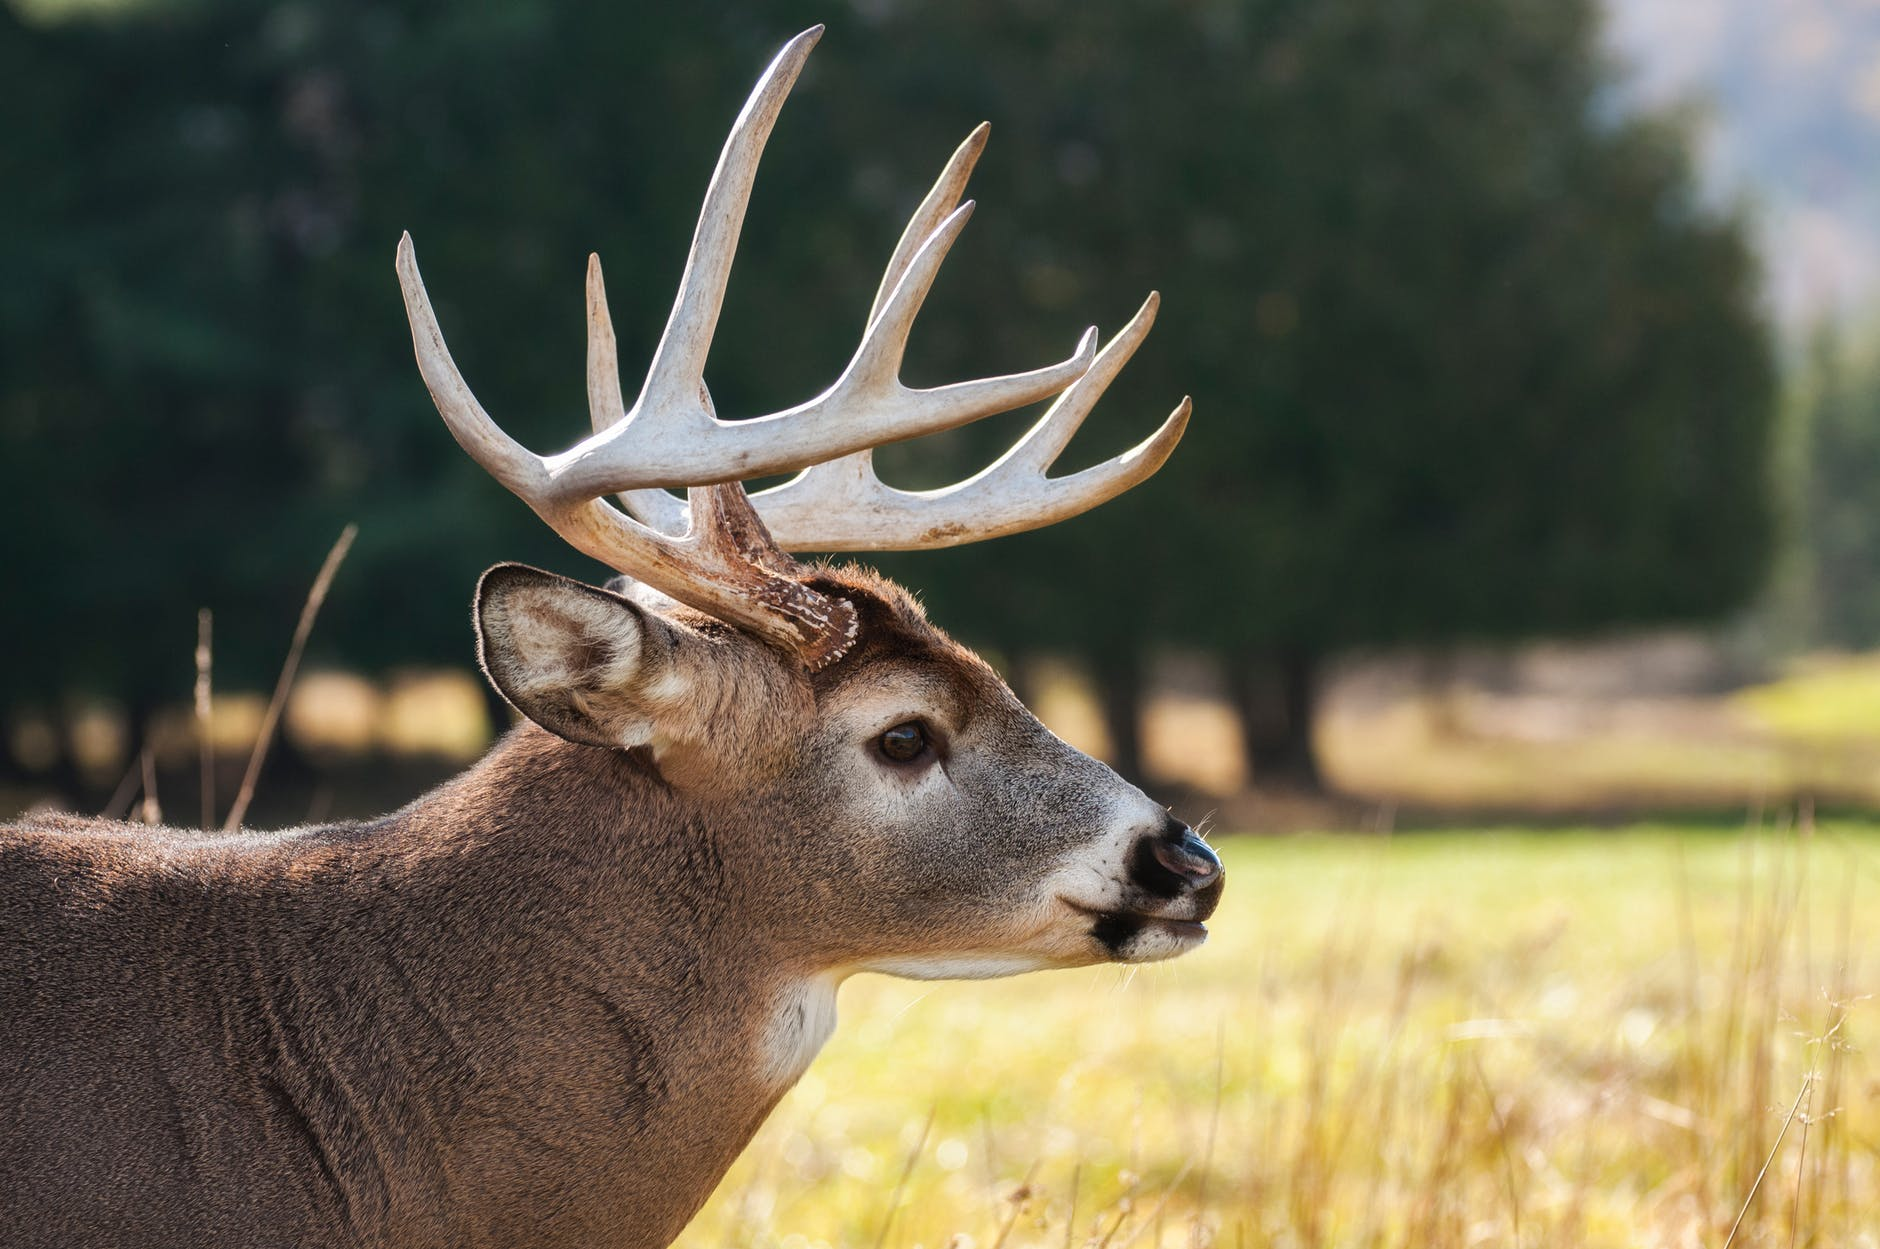 Wisconsin hunters asked to 'keep an eye out' for more than just deer